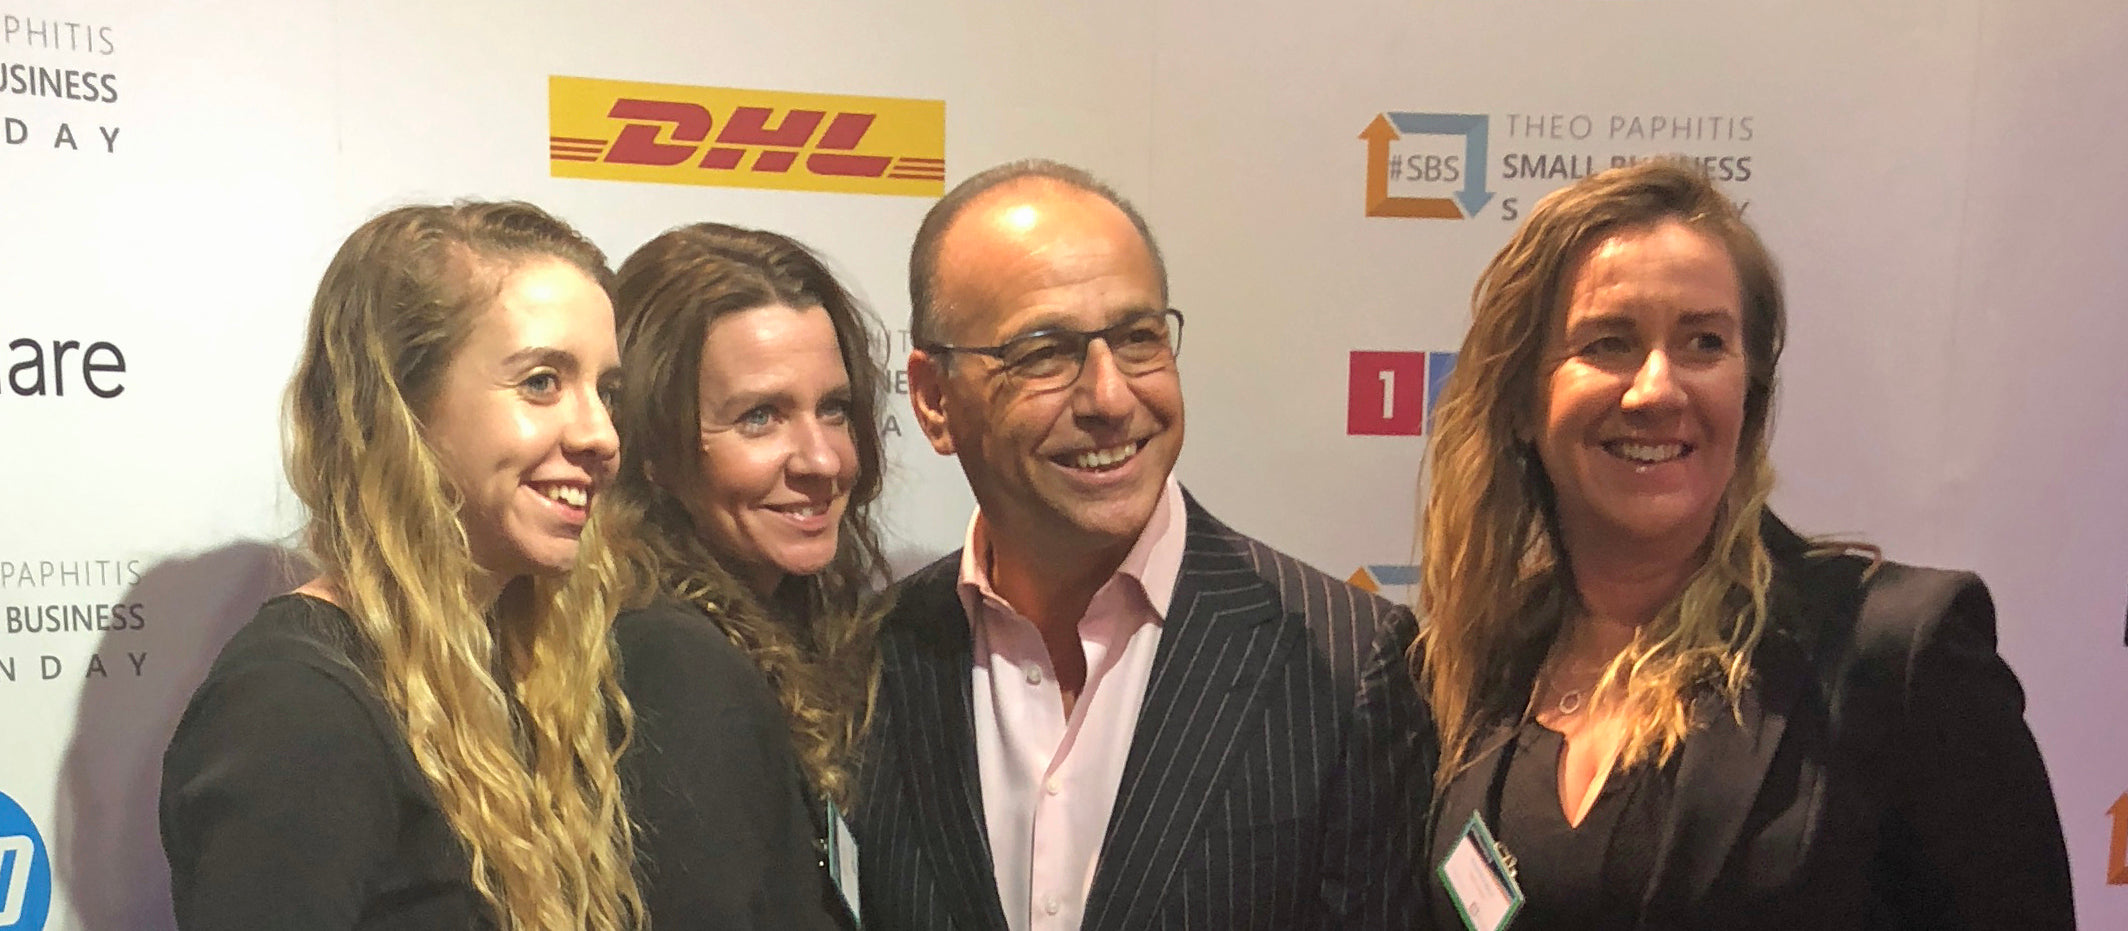 Tigga Towers Team picture with Theo Paphitis